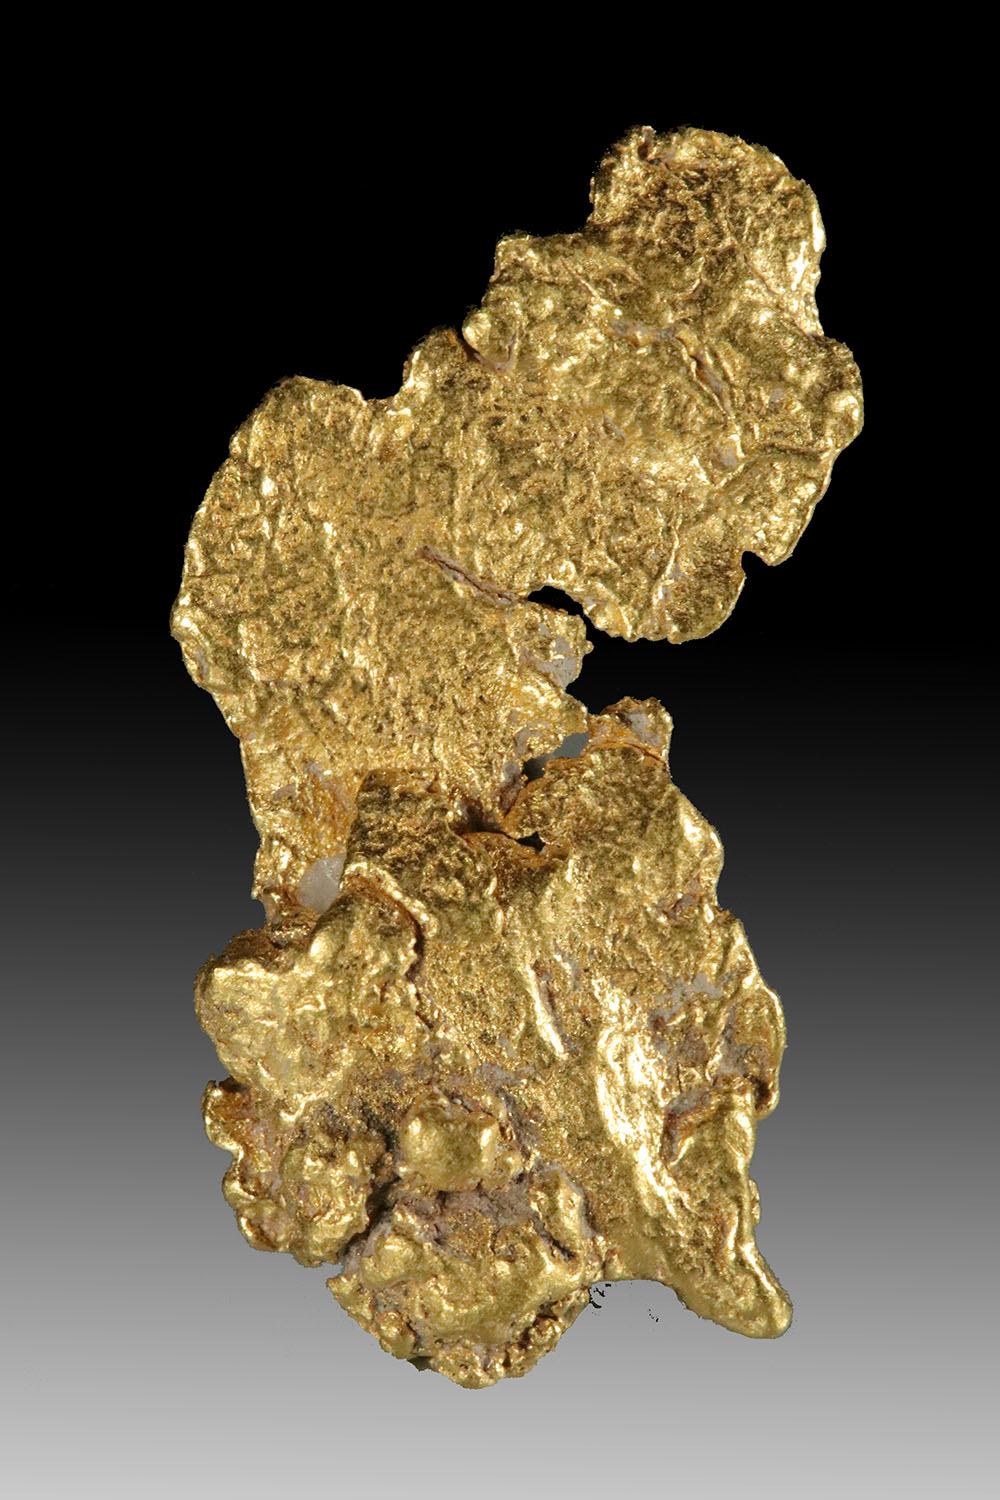 Brilliant Gold Color - Jewelry Grade Australian Gold Nugget